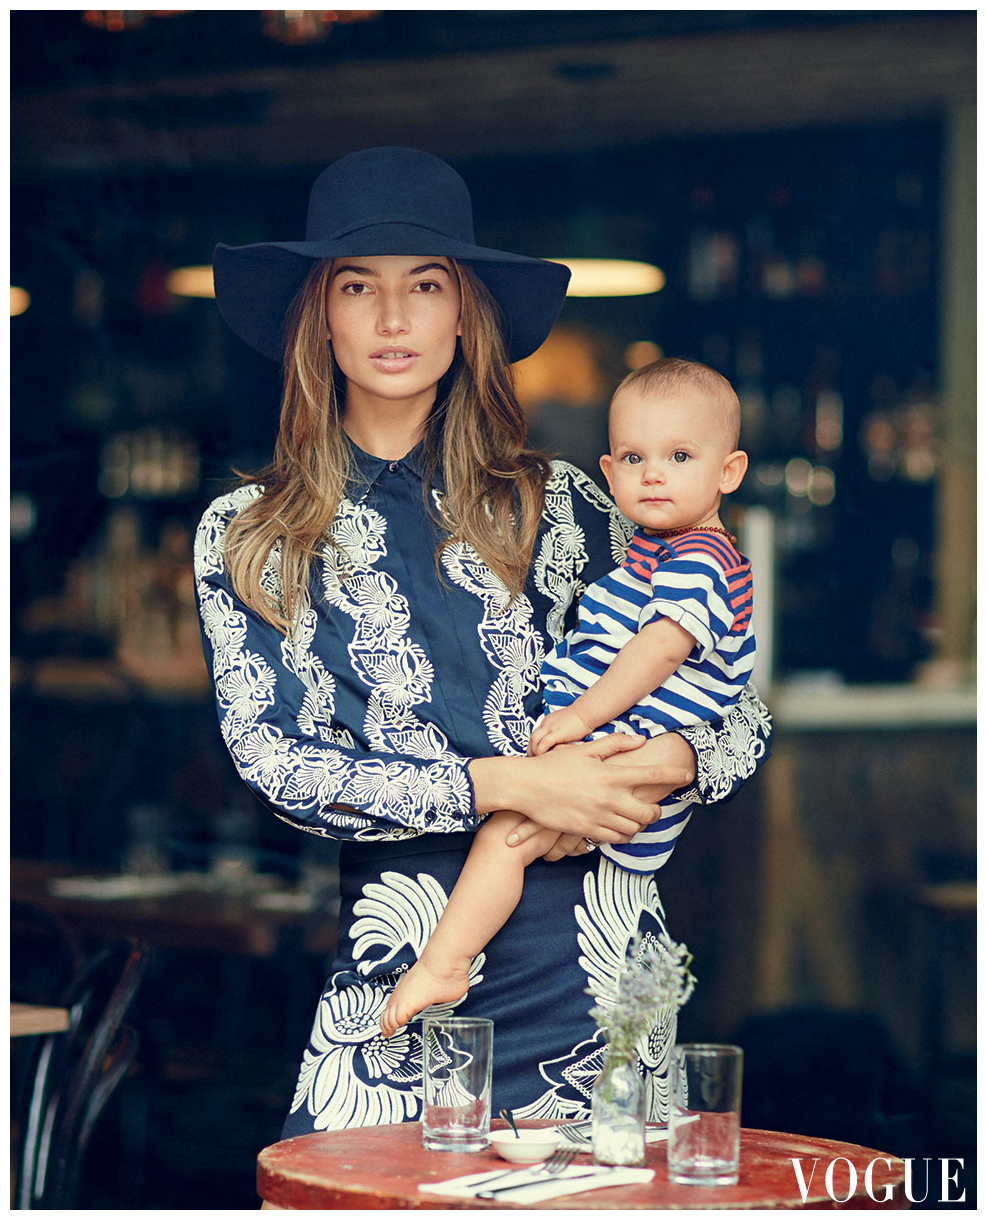 lily-aldridge-boo-george-vogue-august-2013.jpg